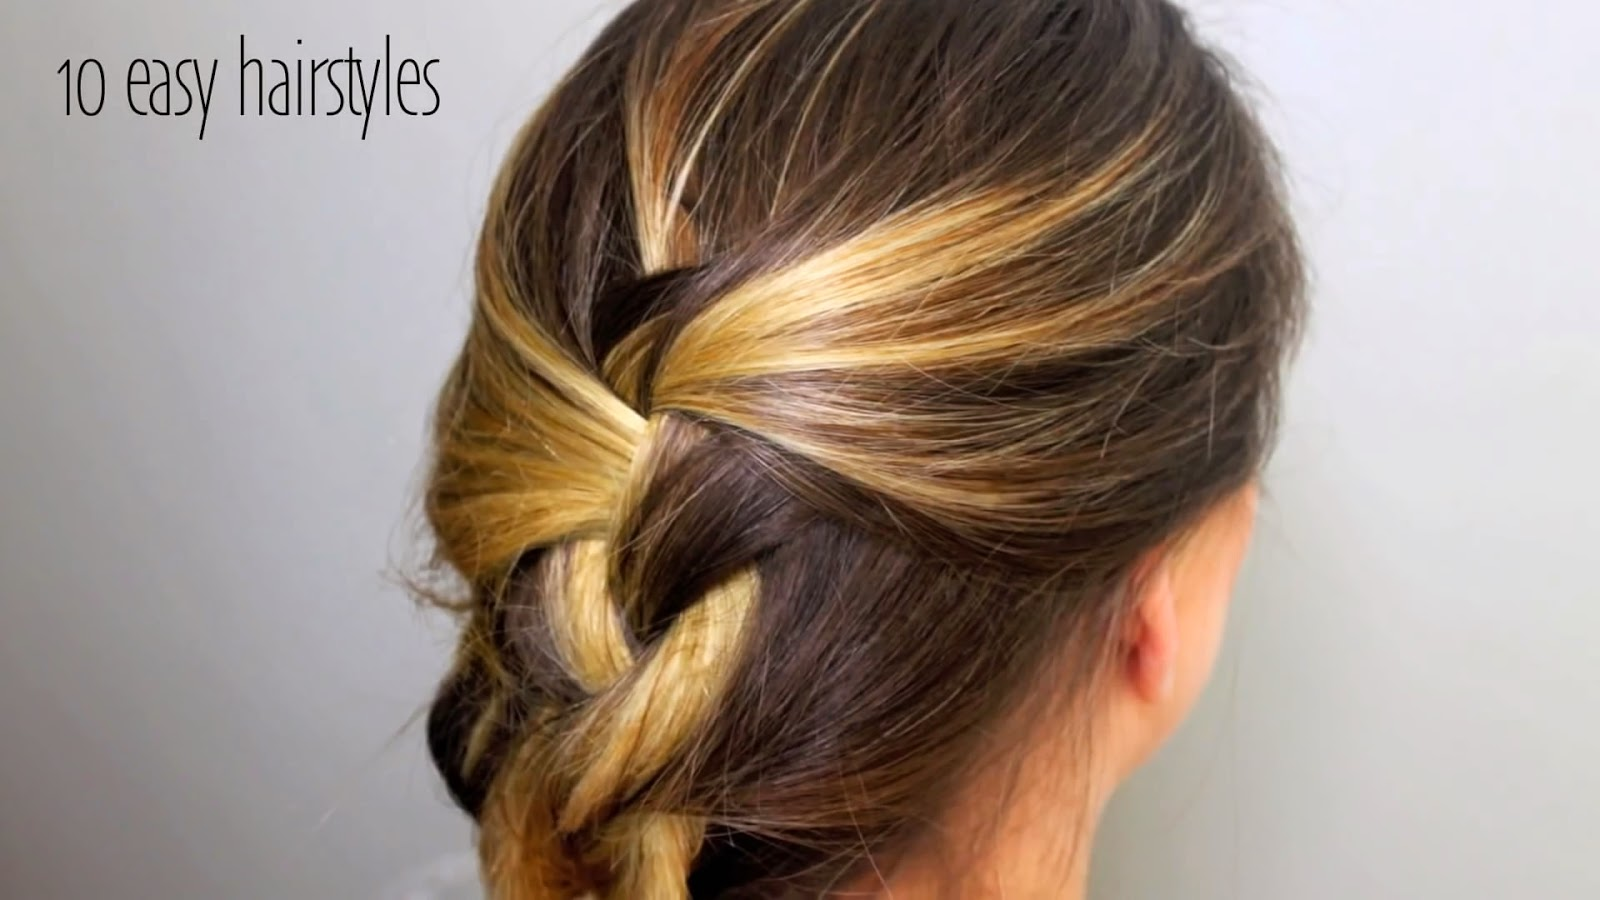 Terrific Stylevia Top 10 Easy Hairstyles Can Set In 5 Minutes Short Hairstyles Gunalazisus